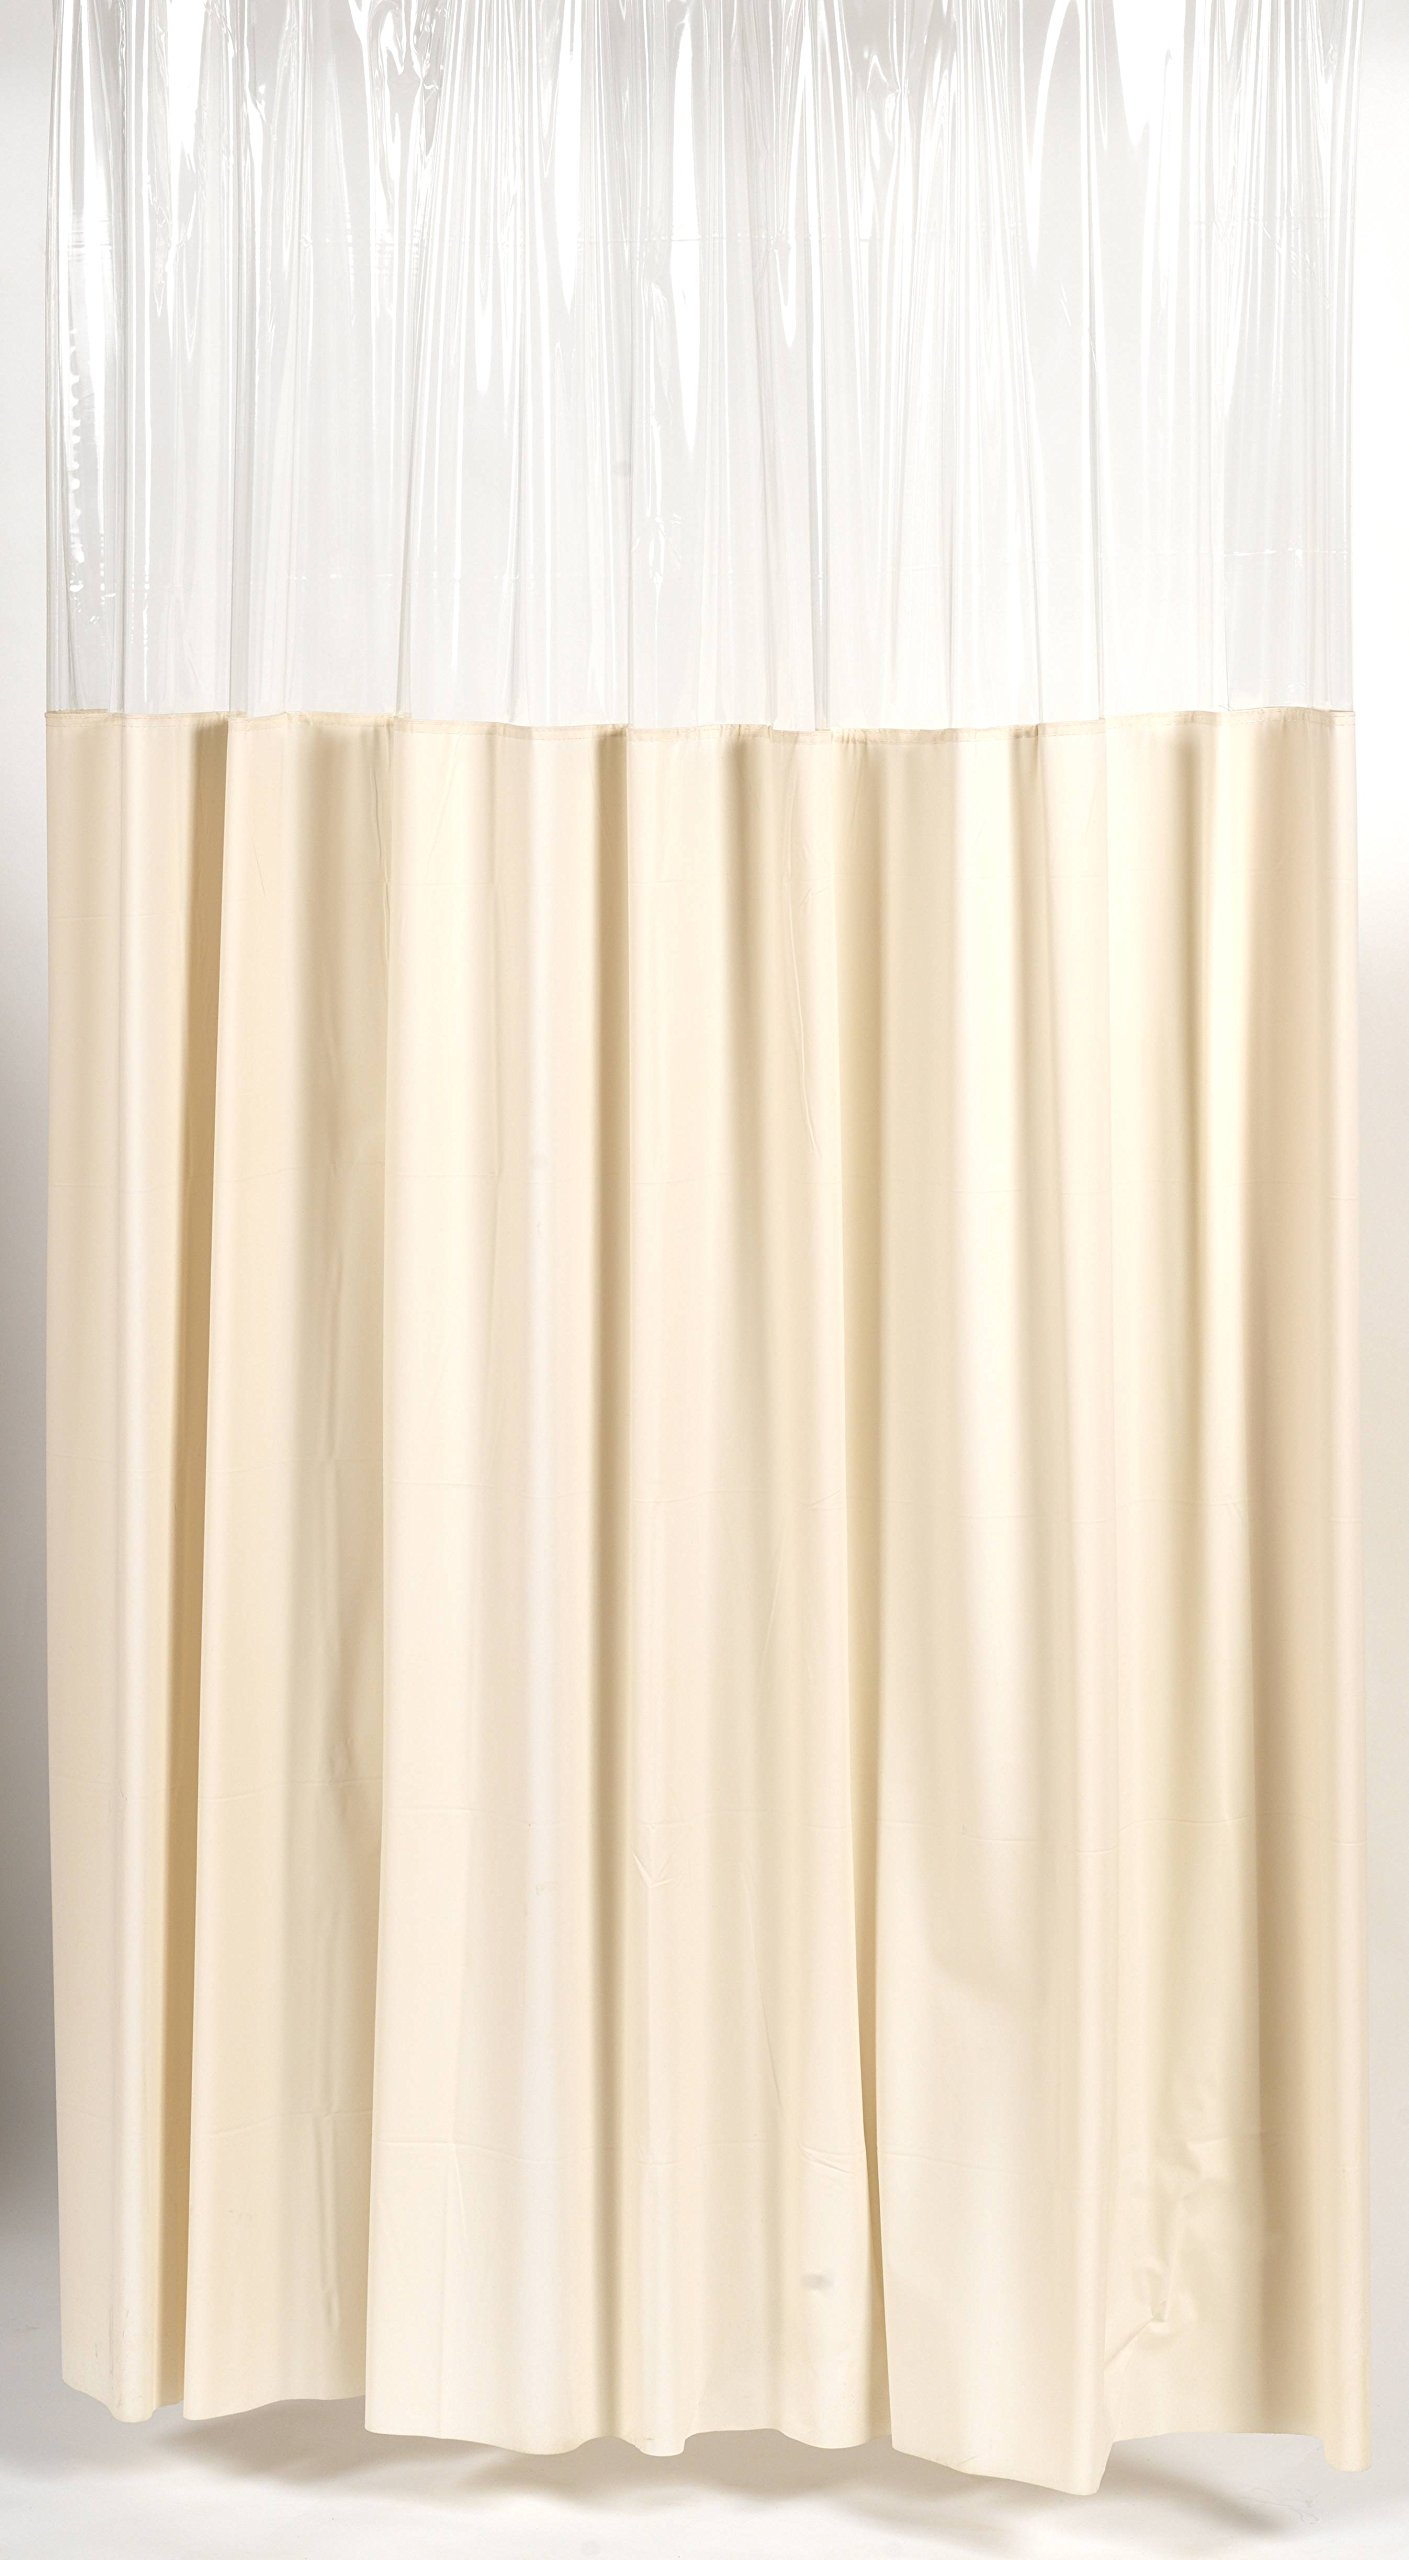 Royal Bath Extra Heavy 10 Gauge Stall Sized Window Vinyl Shower Curtain Liner with Metal Grommets (54'' x 78'') - Ivory